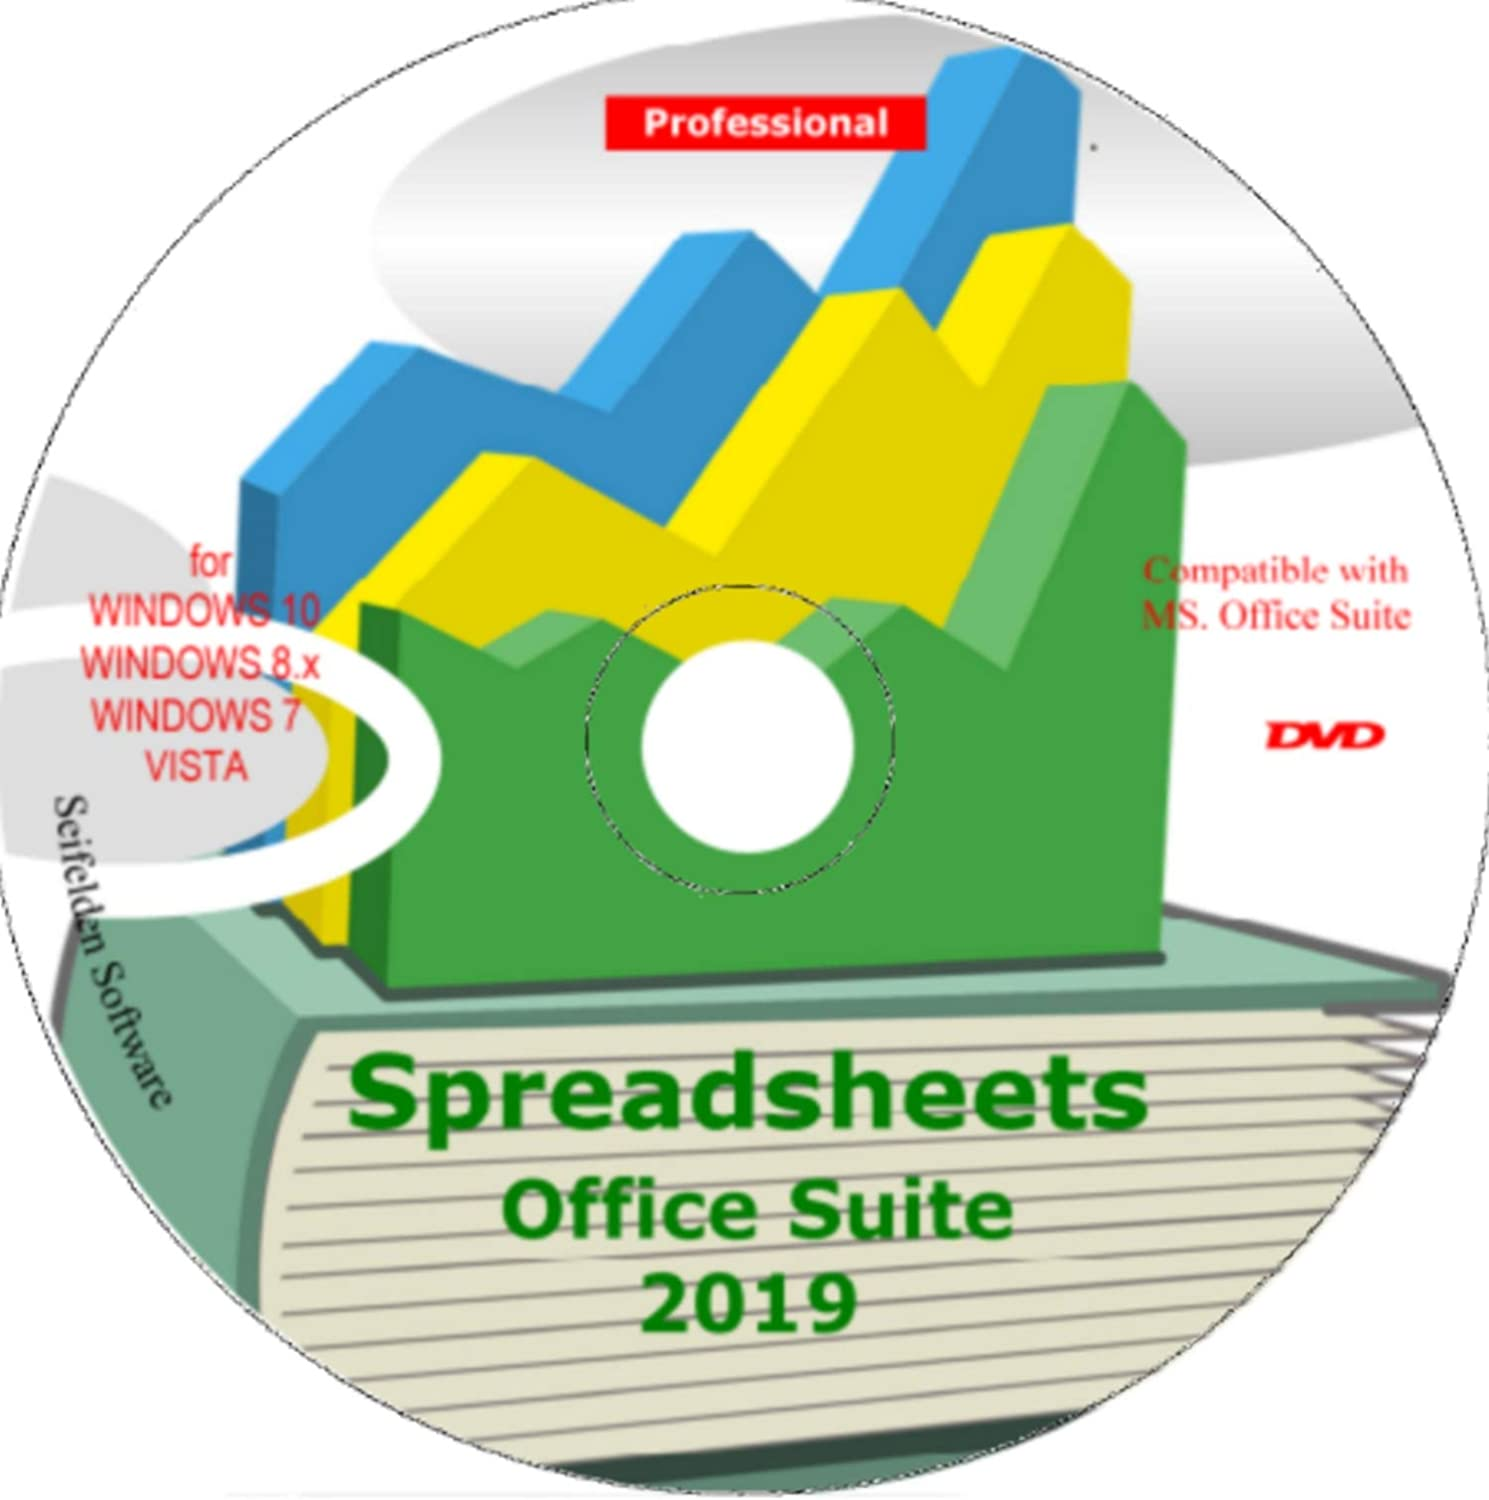 Spreadsheet Excel Office Suite 2019 Works Home Student and Business for Windows 10 8.1 8 7 Vista XP 32 64bit  Alternative to MicrosoftTM Office 2016 2013 2010 365 Compatible Word Excel PowerPoint